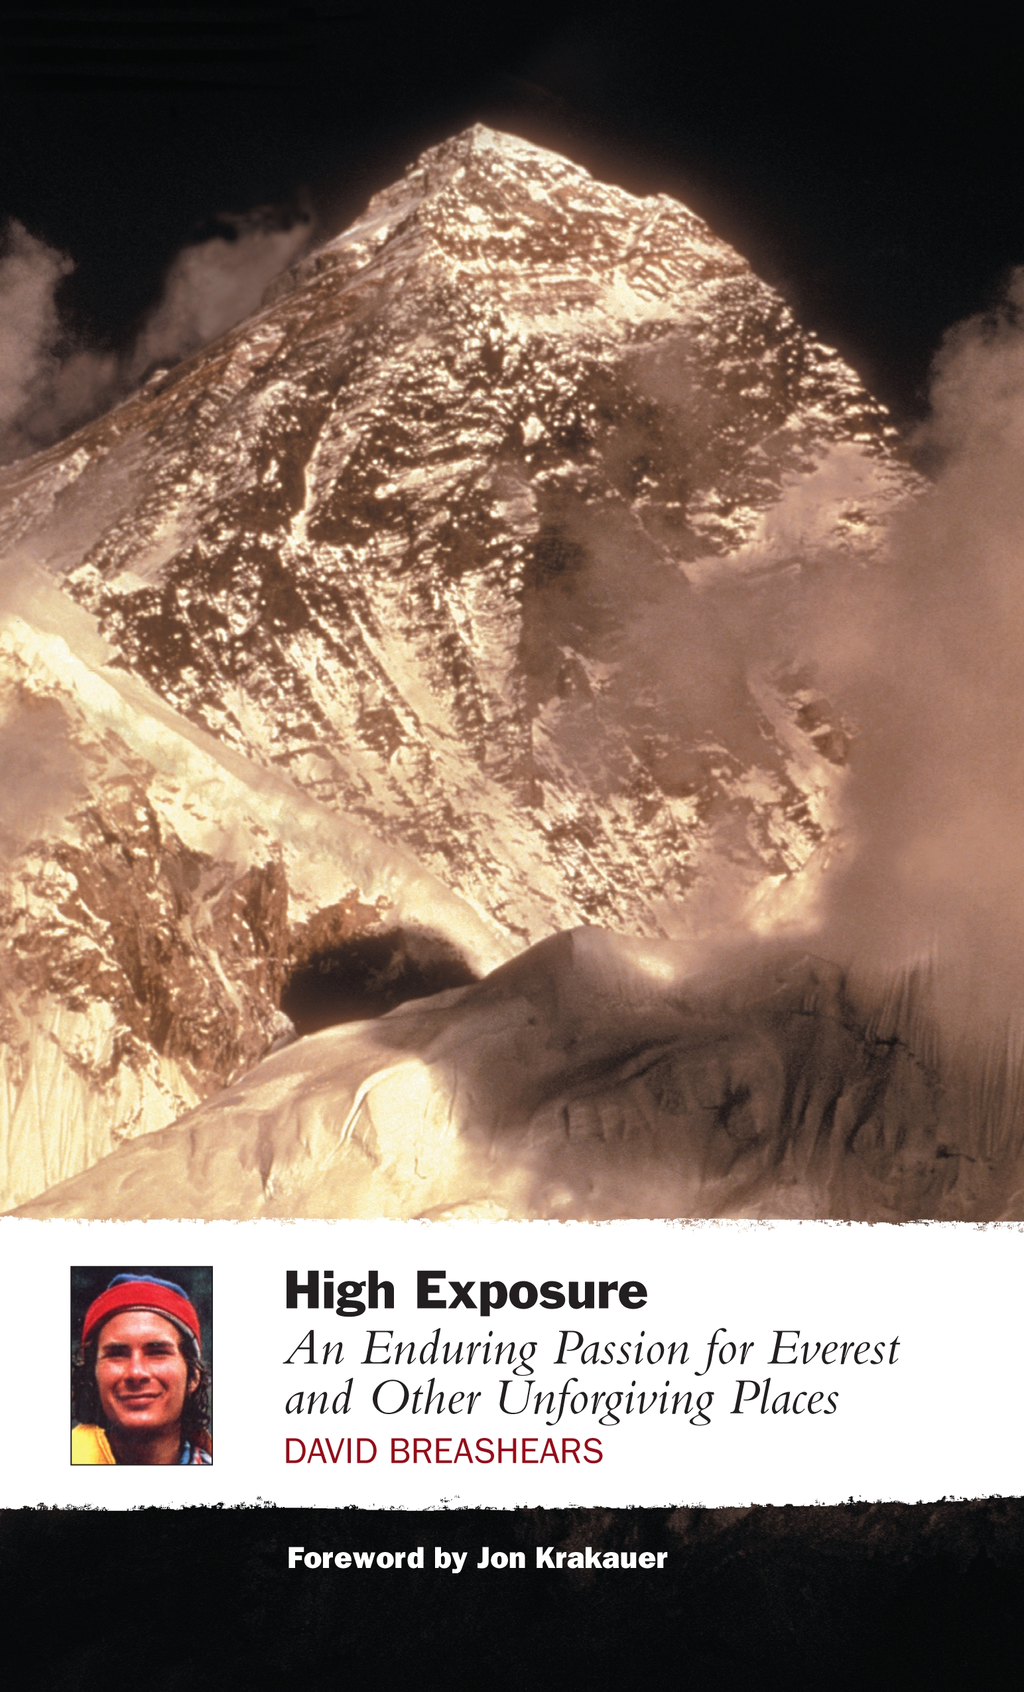 High Exposure An Enduring Passion for Everest and Other Unforgiving Places